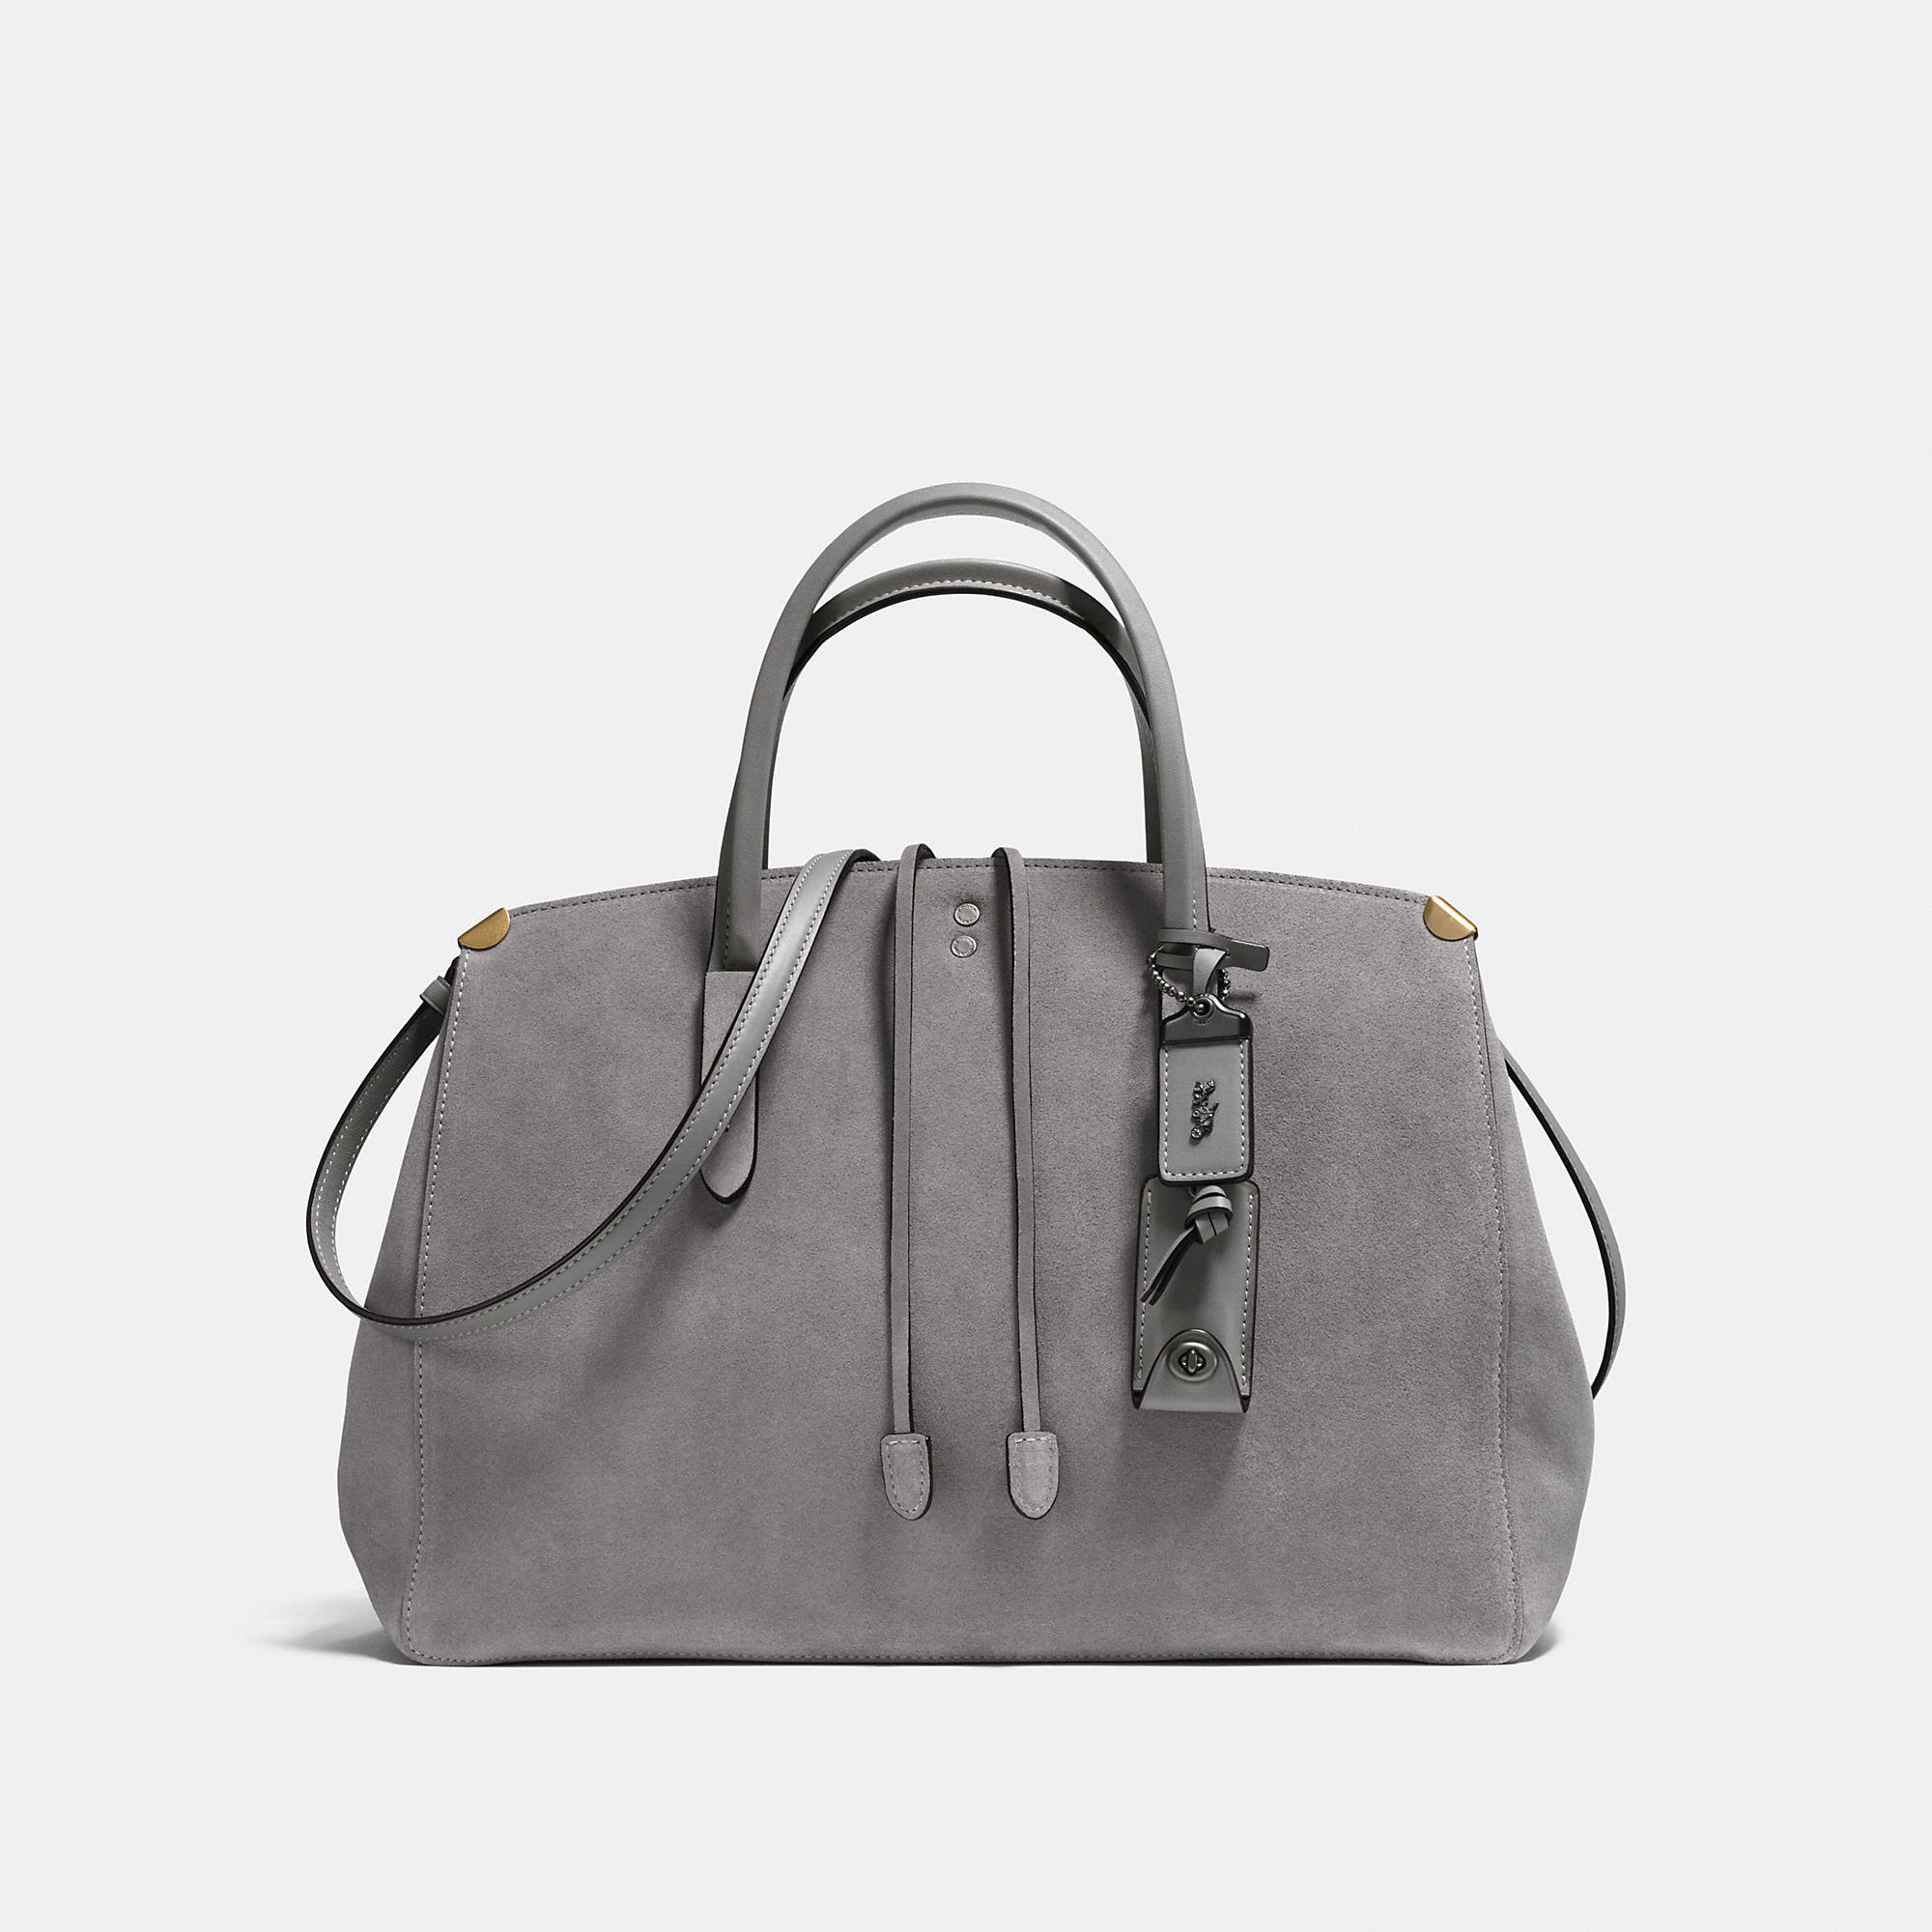 9f21d8efcc62 COACH COACH COOPER CARRYALL.  coach  bags  shoulder bags  hand bags  lining   crossbody  suede